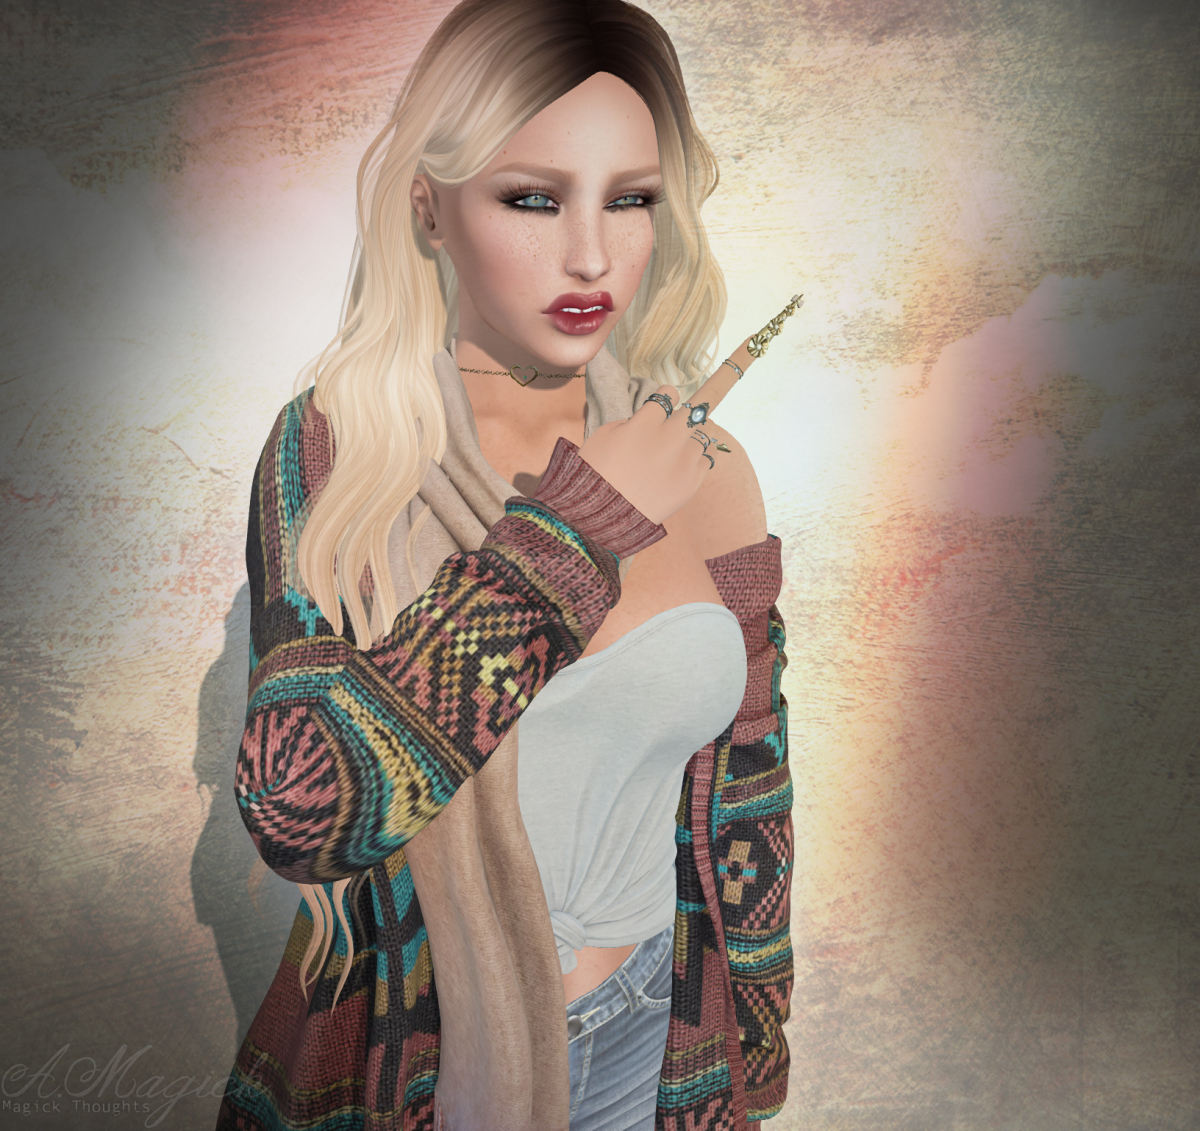 Dealing with Douchebags from Second Life – Magick Thoughts SL ❤ Le meilleur de Second Life